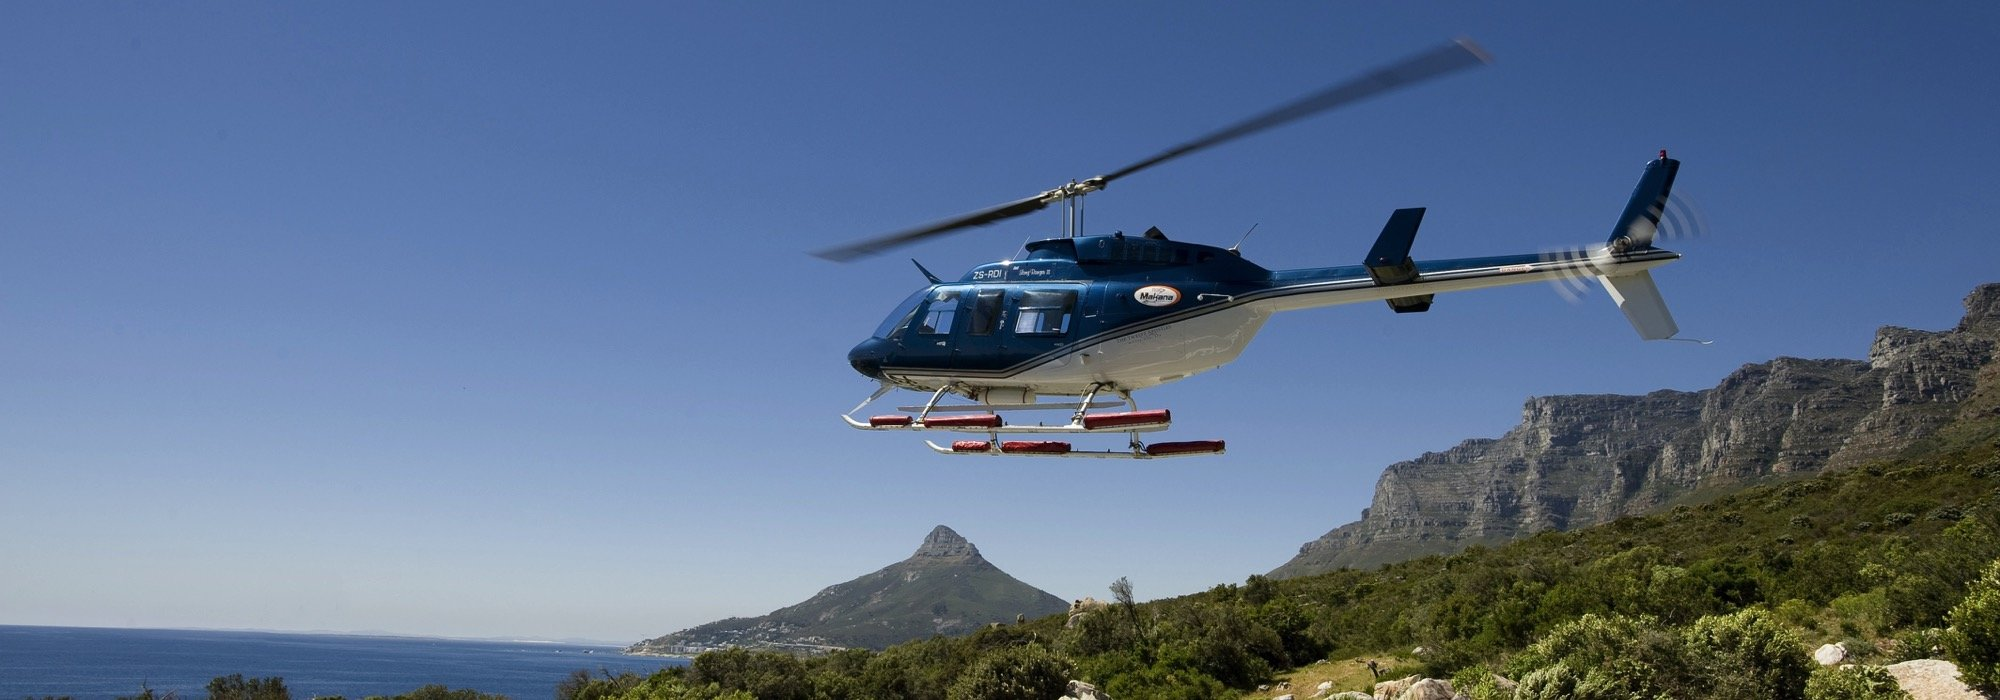 Helicopter in Cape Town